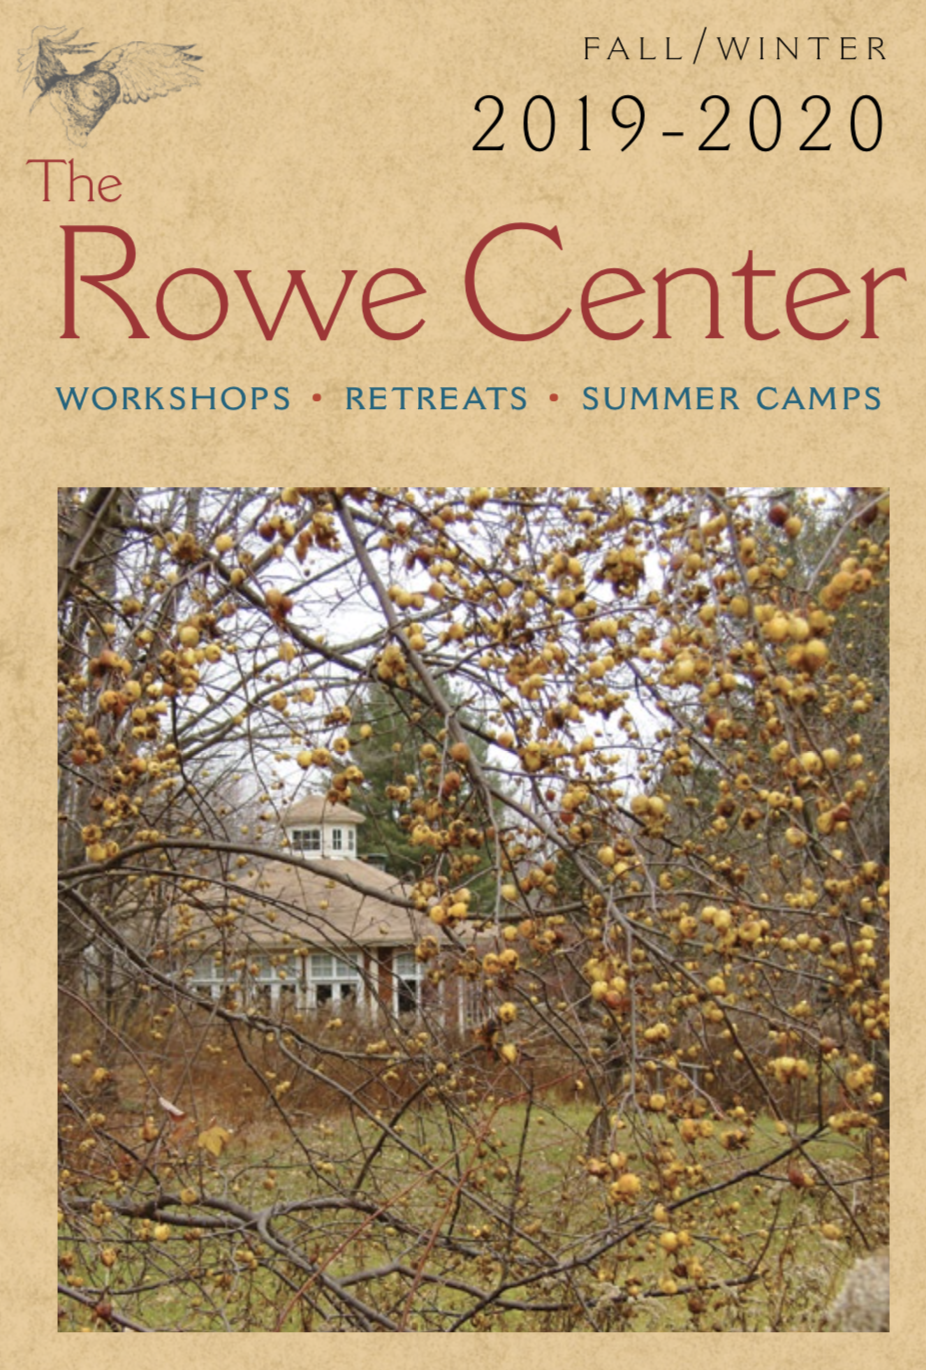 The Rowe Center • Experience the Magic that is the Rowe Center